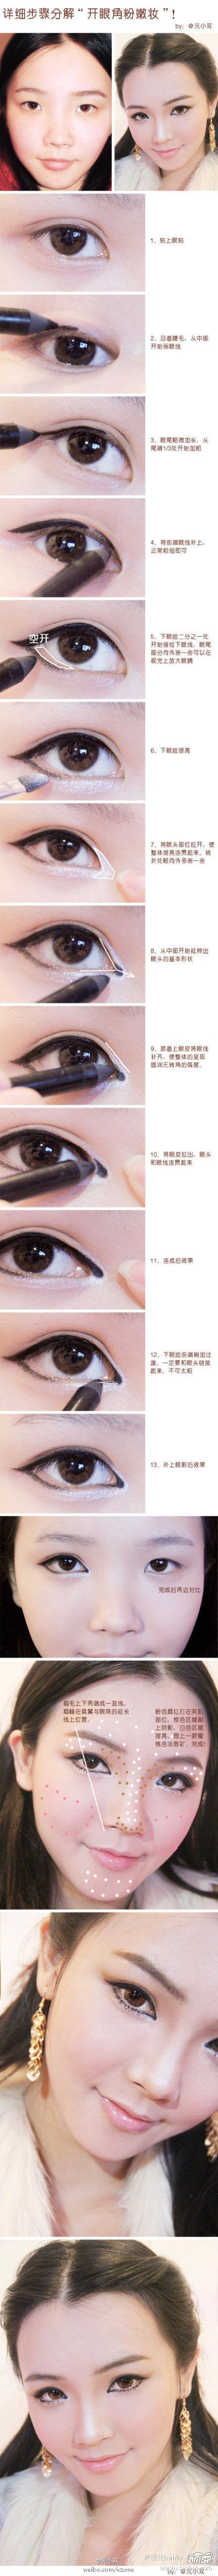 Find This Pin And More On Ulzzang Makeup  Asian Makeup